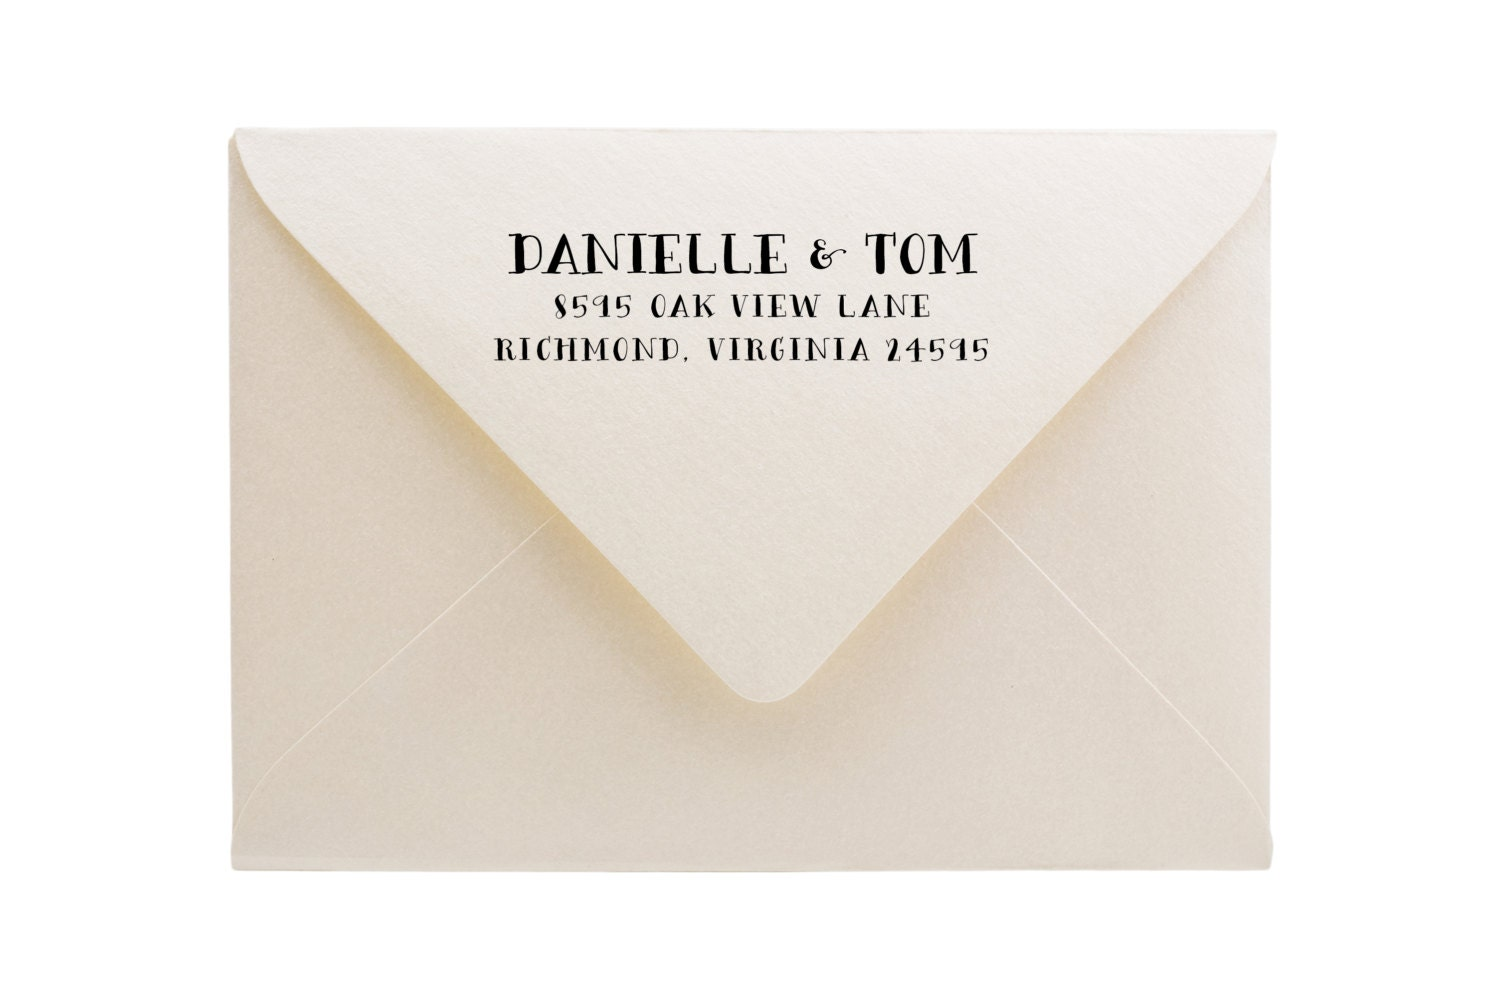 Stamps For Wedding Invitations: Wedding Stamp Custom Return Address Stamp Wedding Invitation